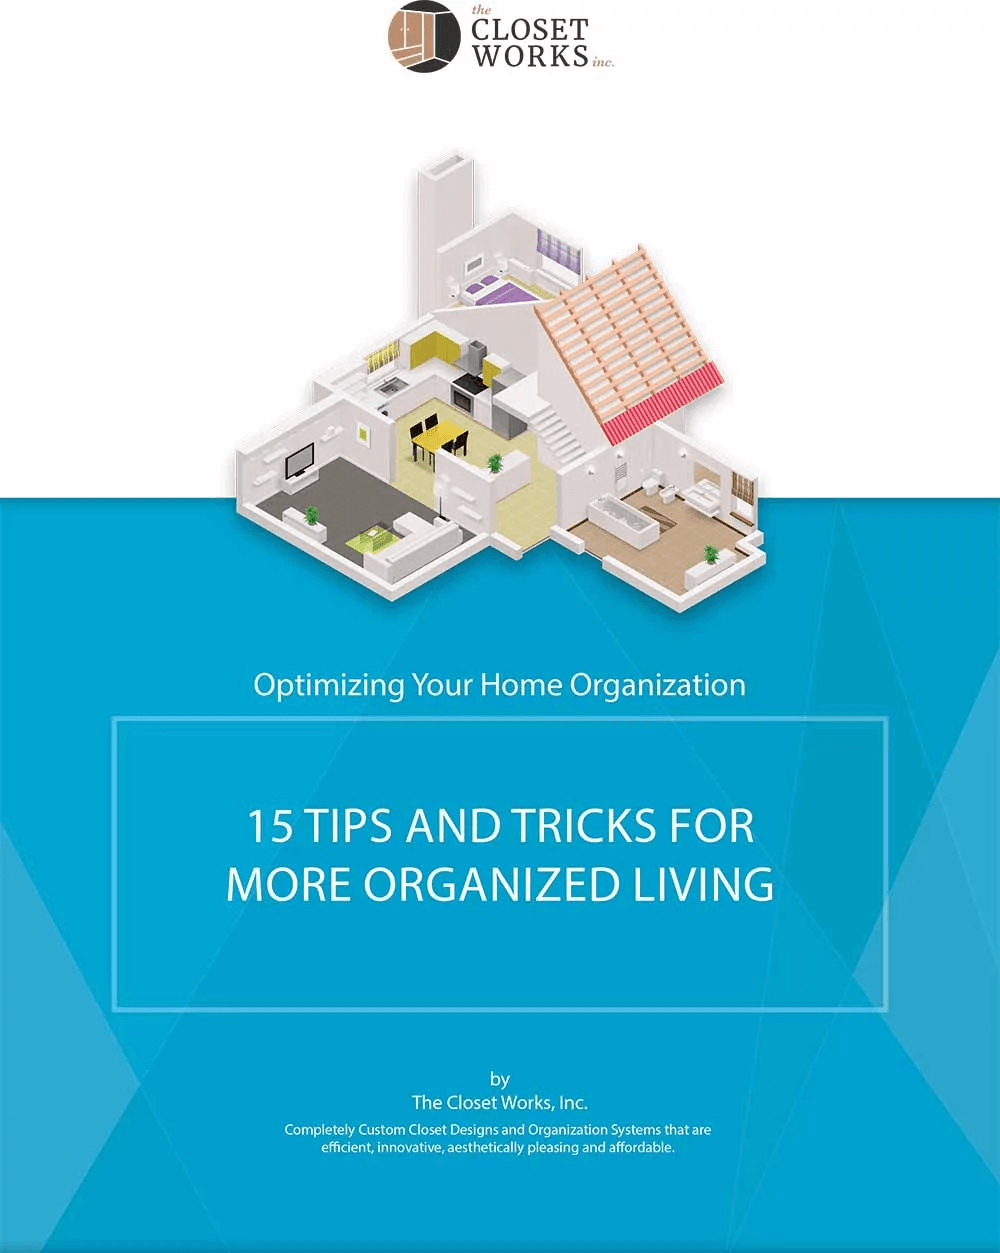 15 Tips, Tricks, and Hacks to Optimize Your Home